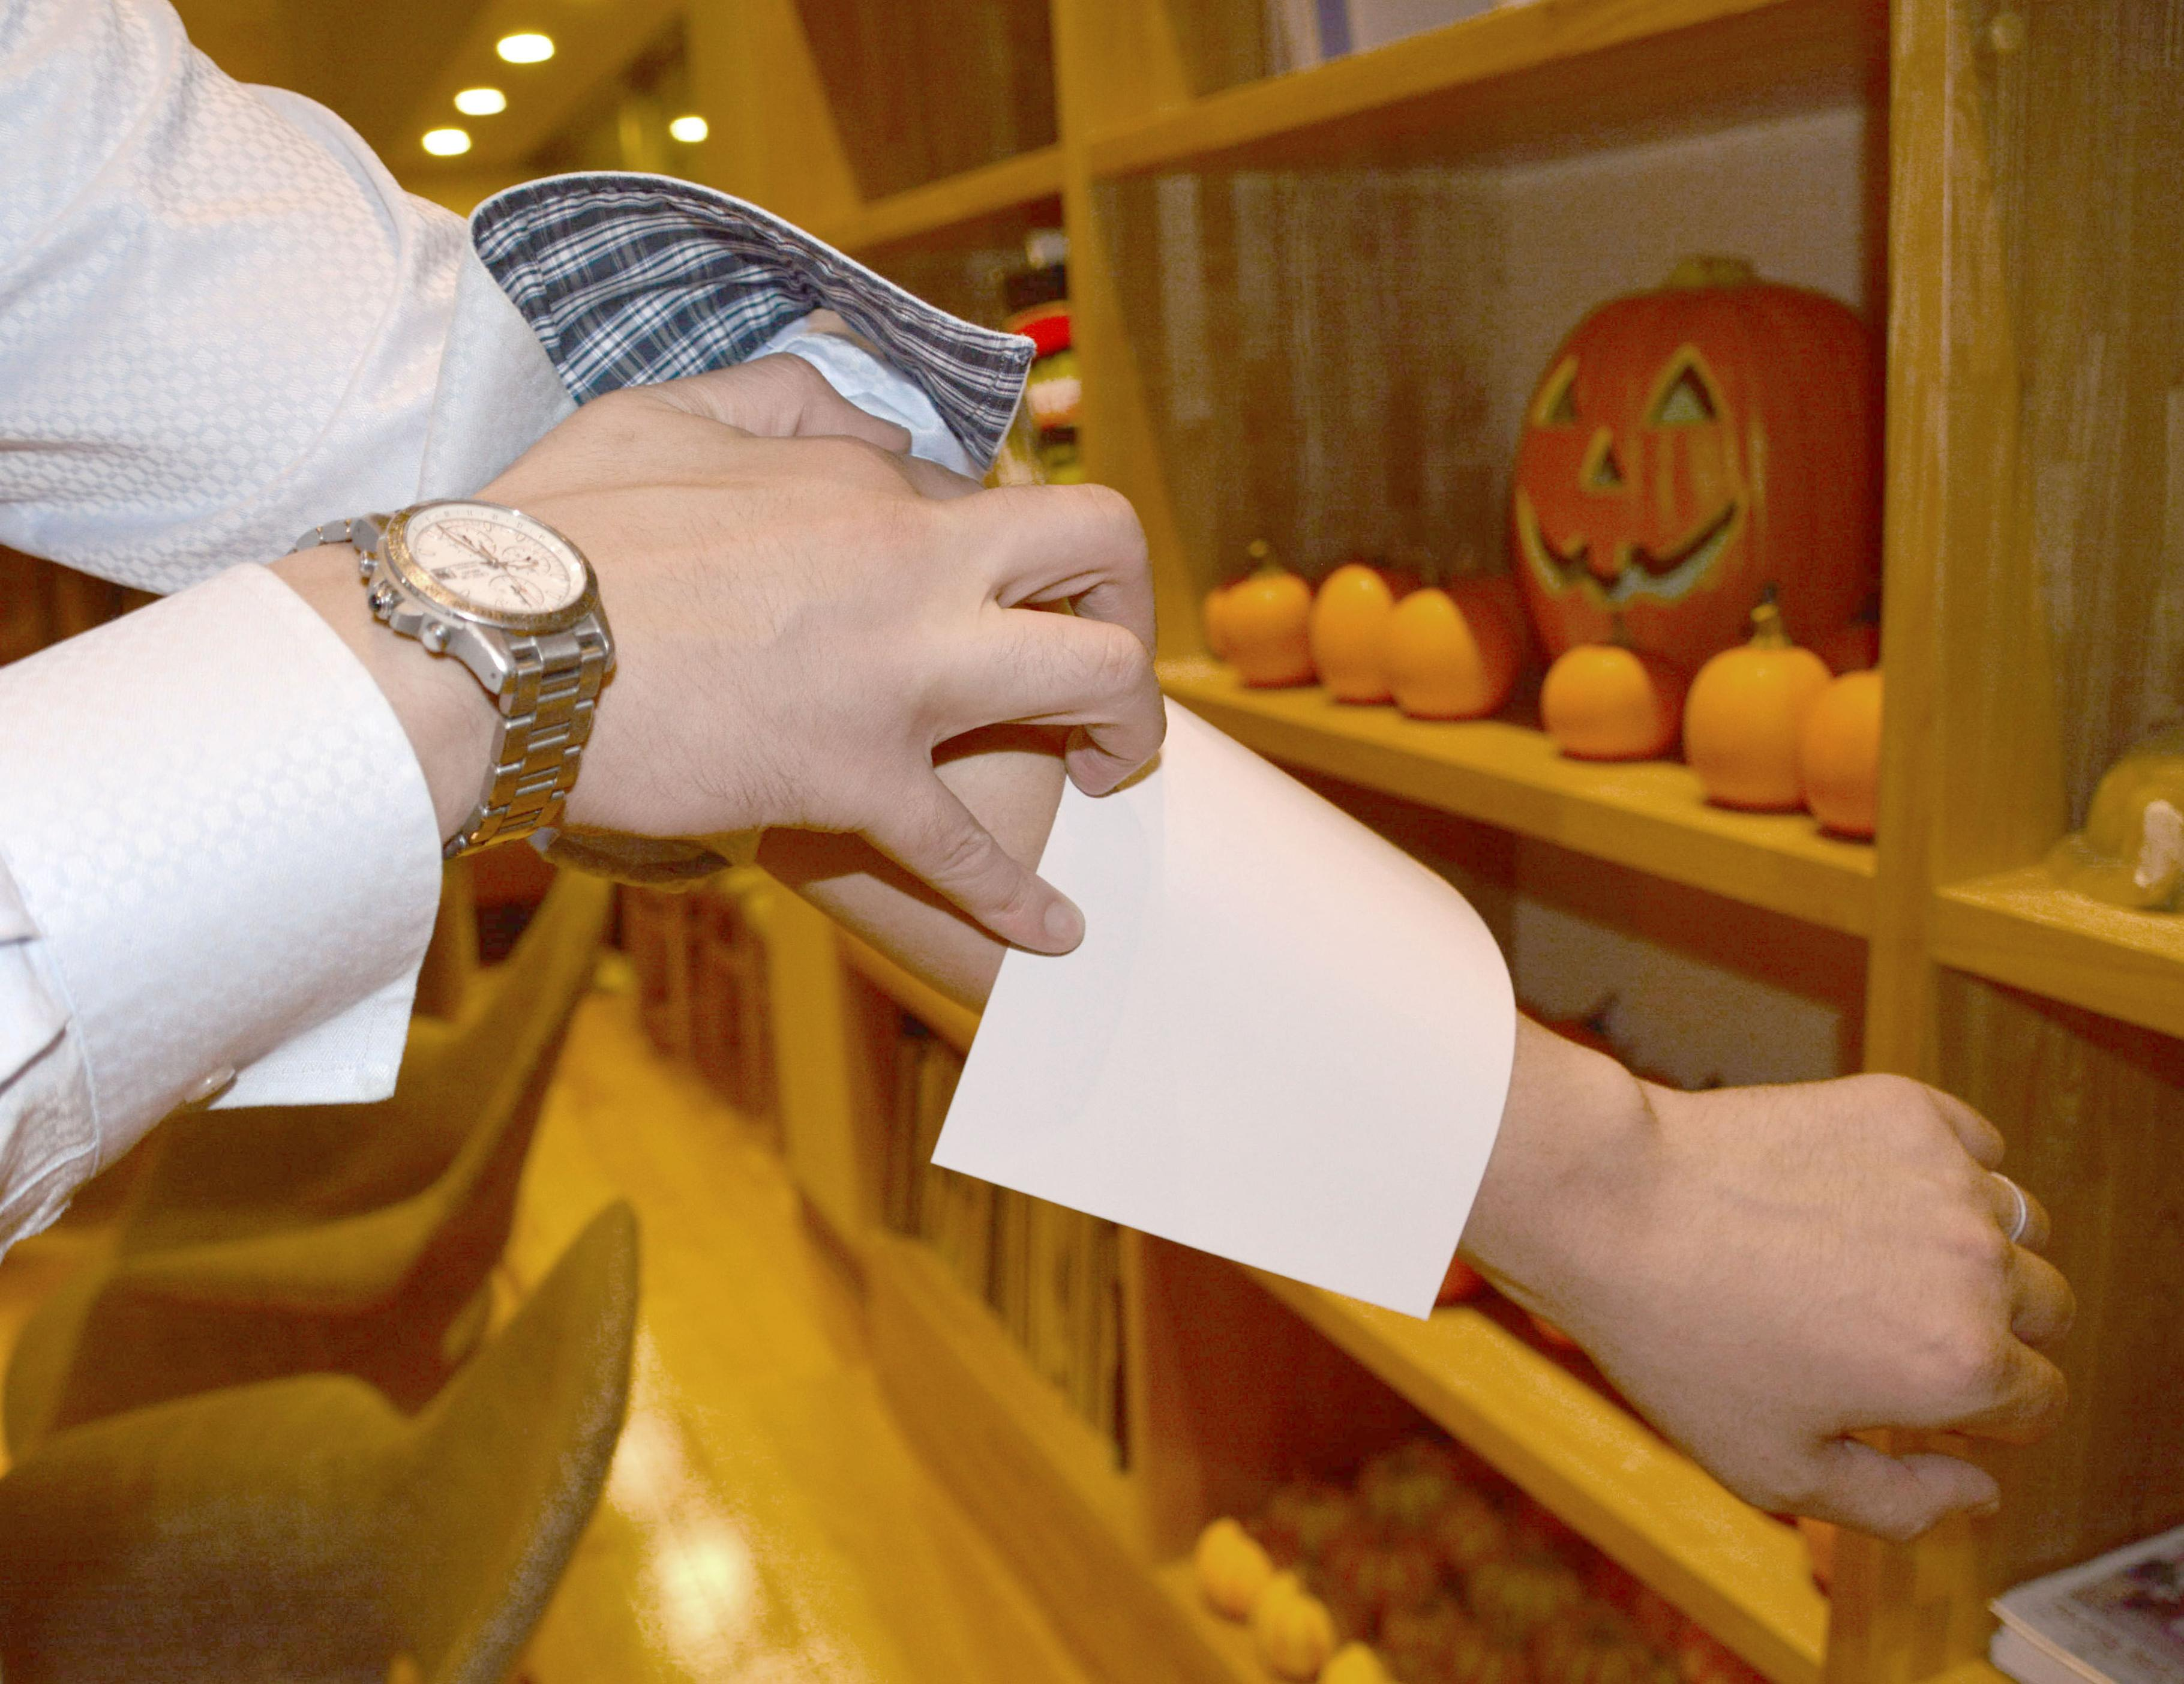 A staffer at Ofuro Cafe utatane, a bathhouse in the city of Saitama, shows a sticker to cover tattoos on Oct. 21. | KYODO